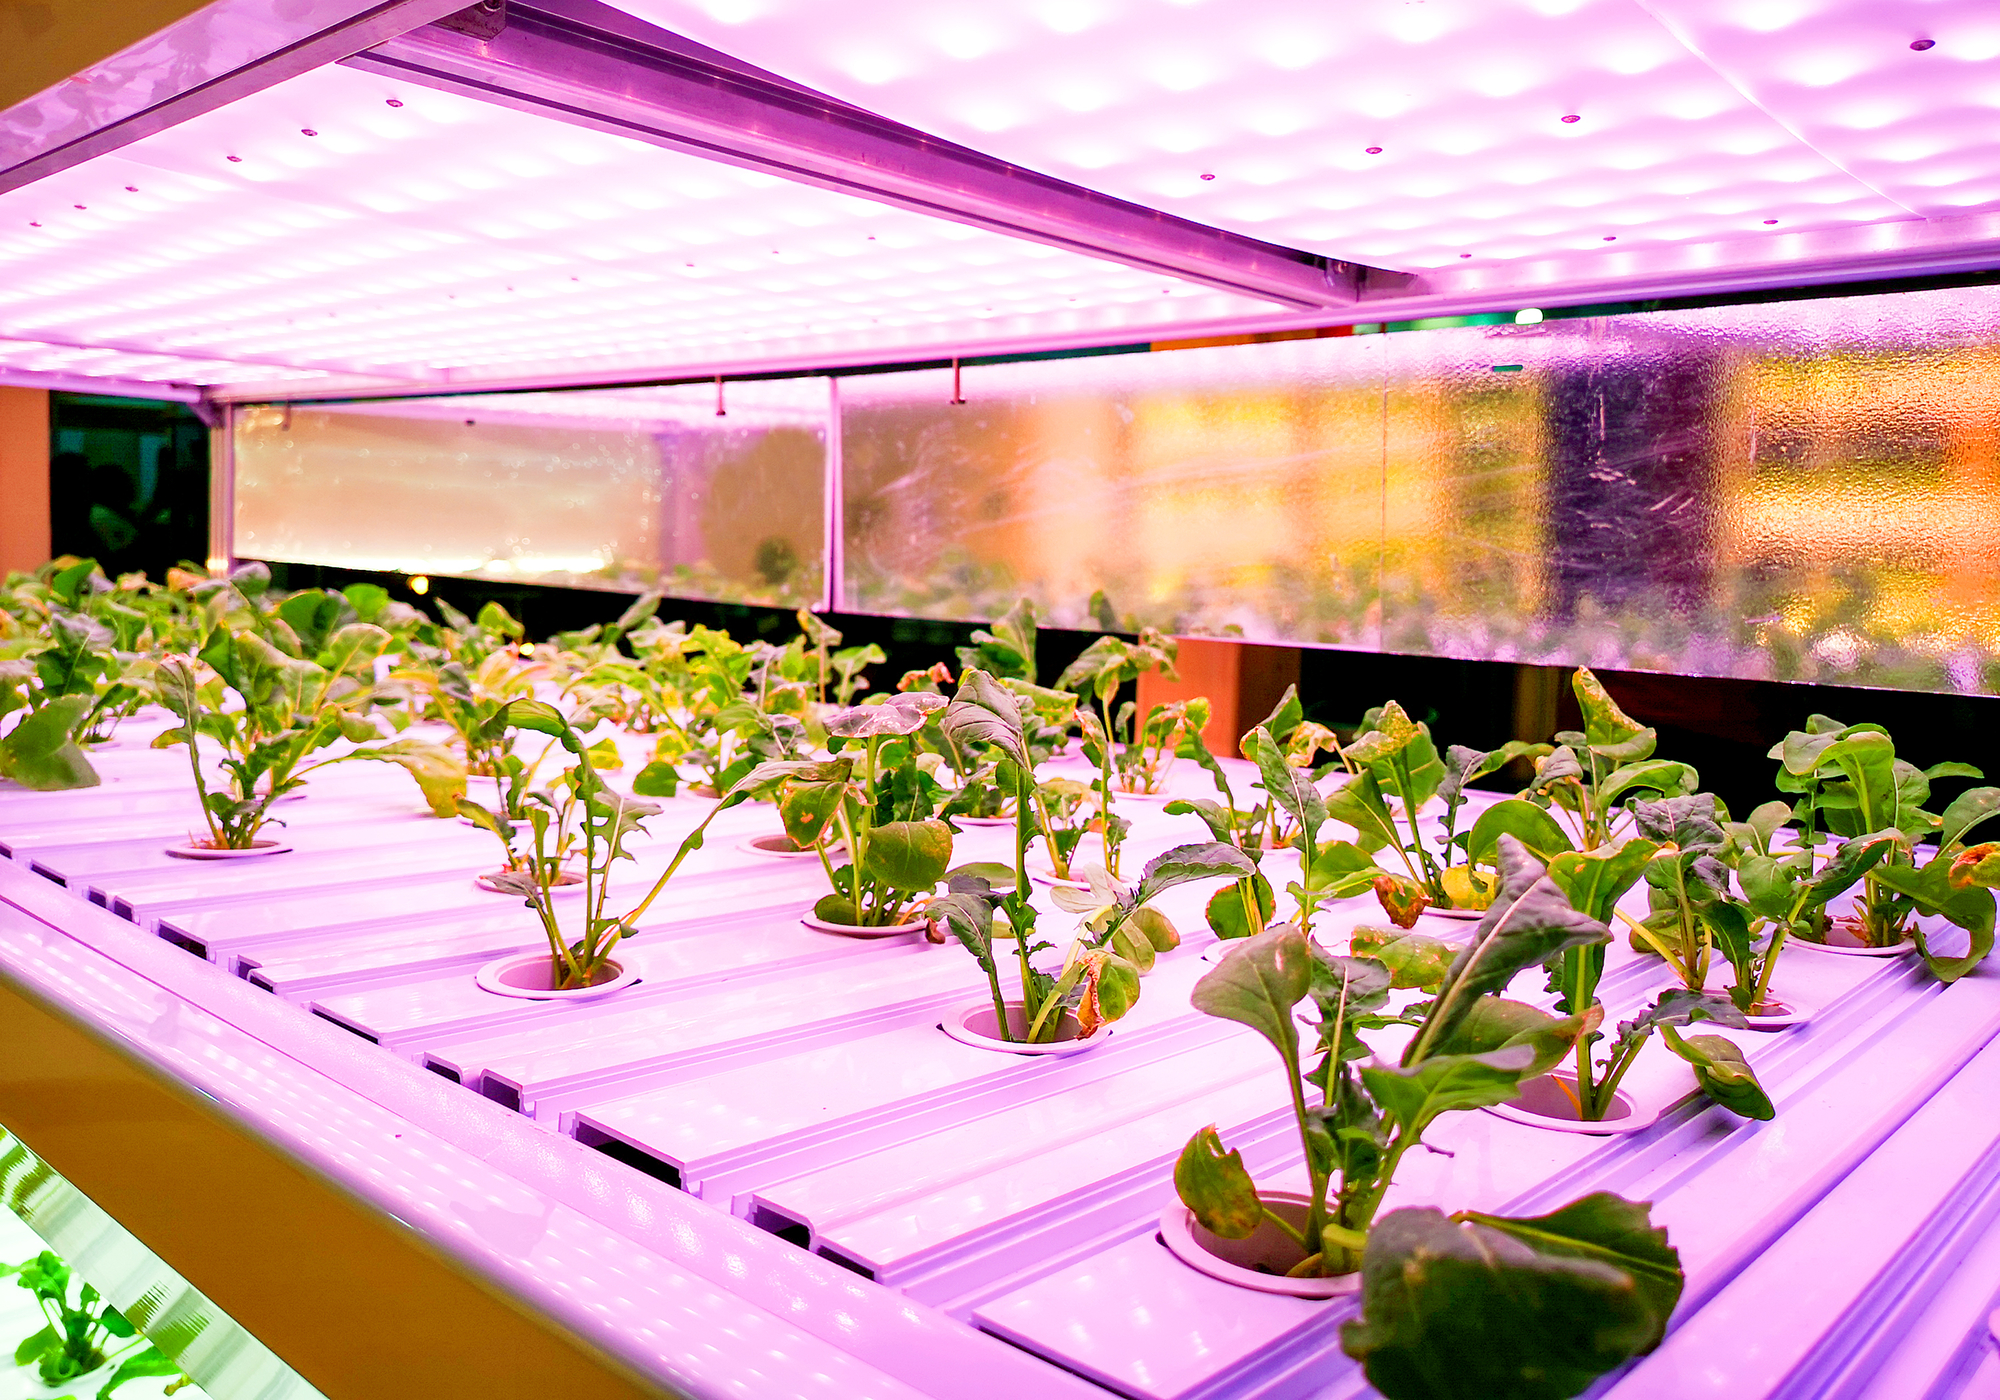 The 8 Best Grow Lights for Growing Vegetables Indoors